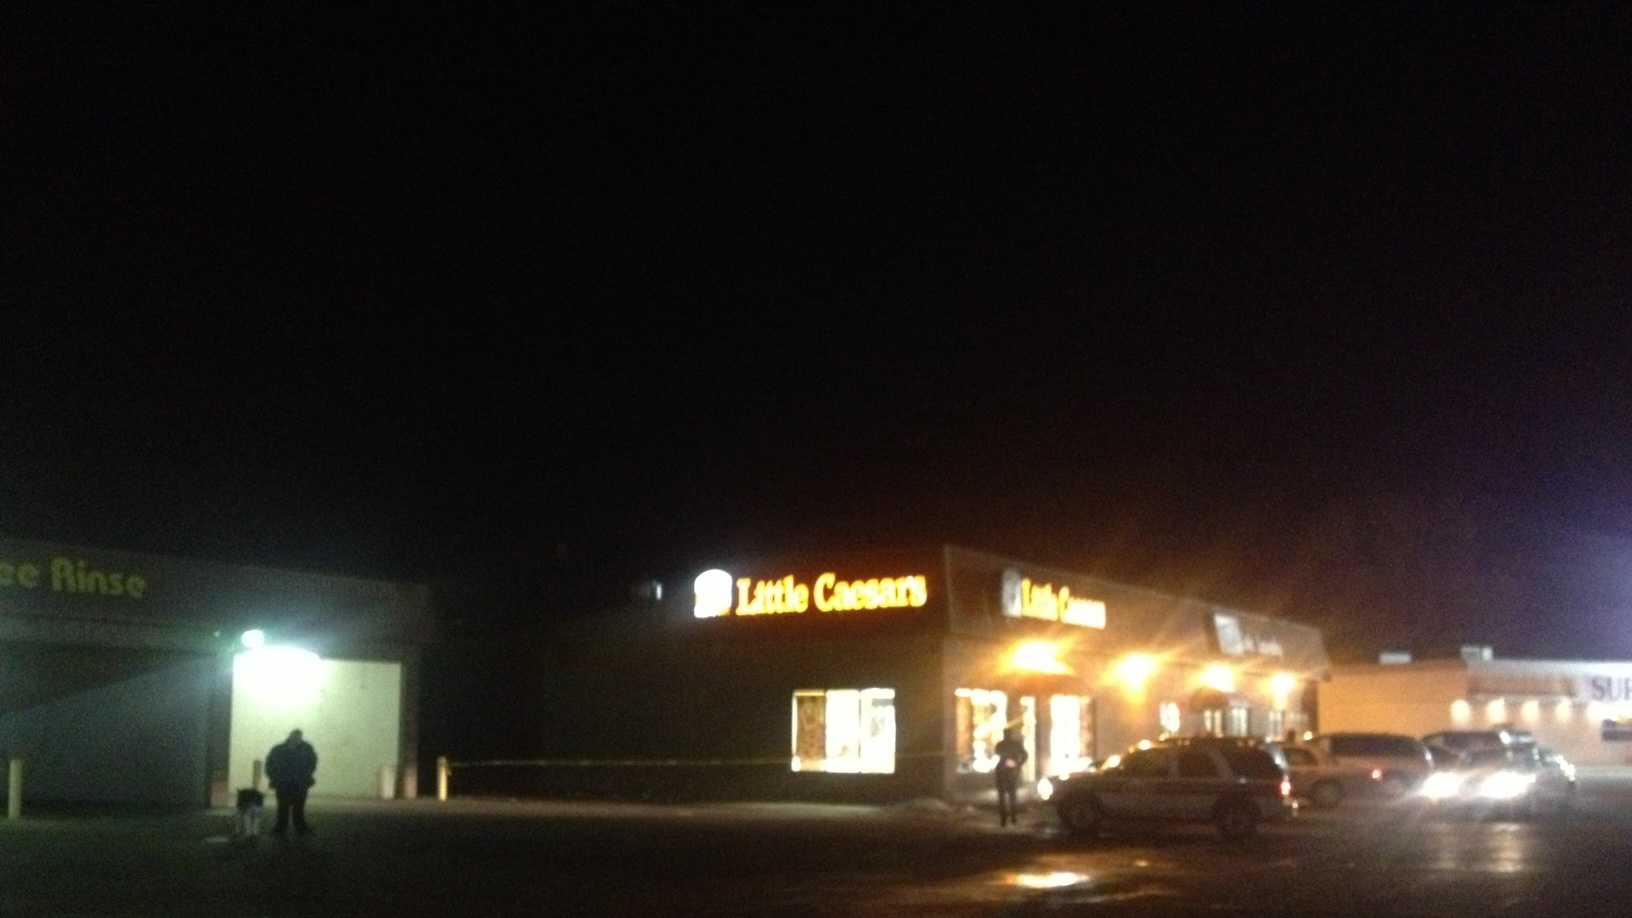 PHOTO: little caesars